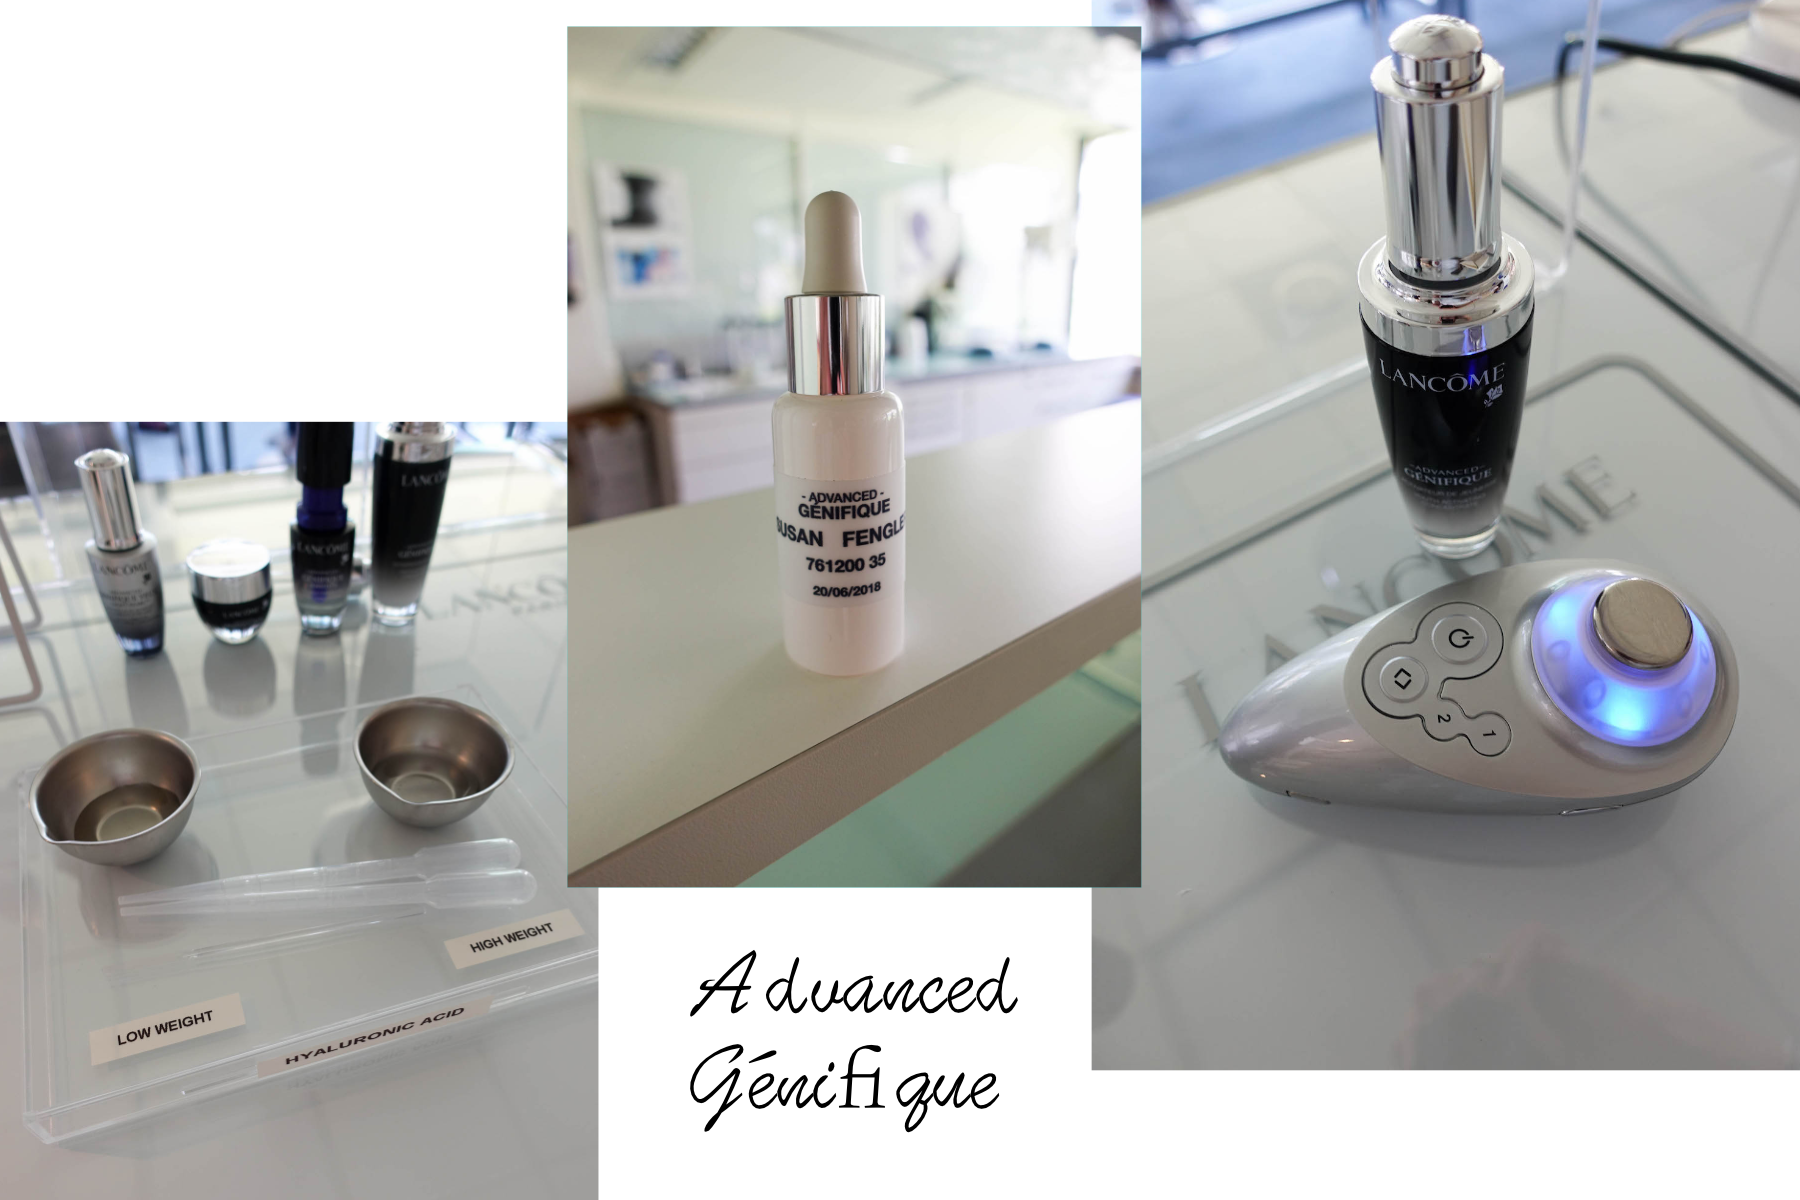 suelovesnyc_labor_lancome_advanced_genifique advanced génifique suelovesnyc_labor_lancome_advanced_genifique